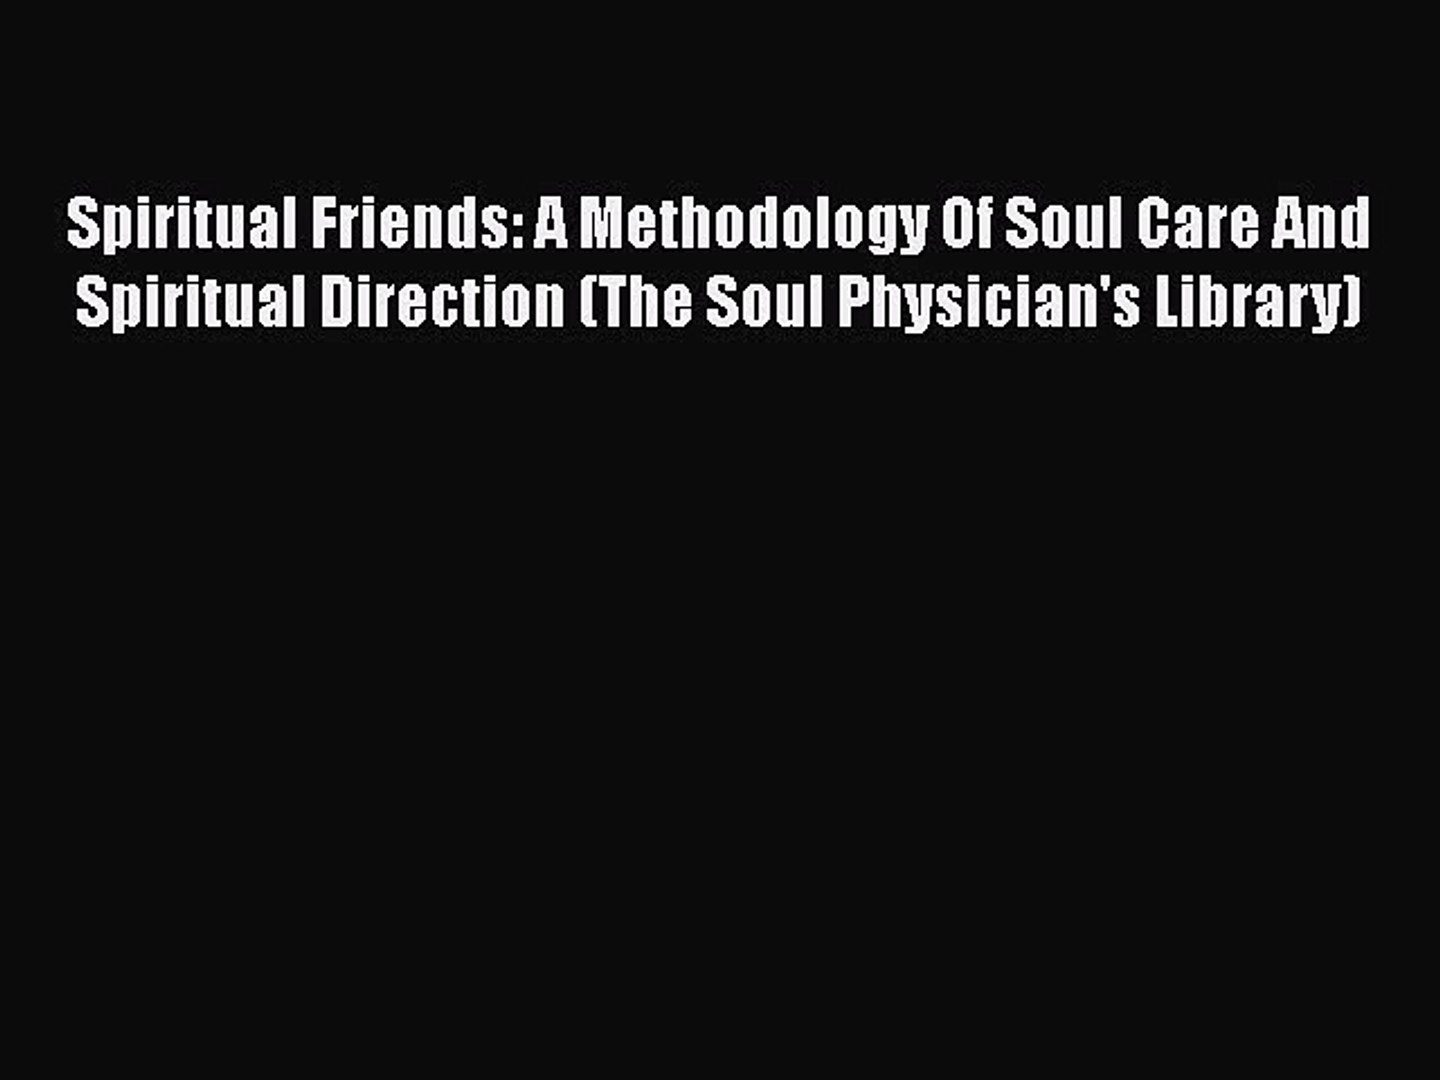 [Read book] Spiritual Friends: A Methodology Of Soul Care And Spiritual Direction (The Soul